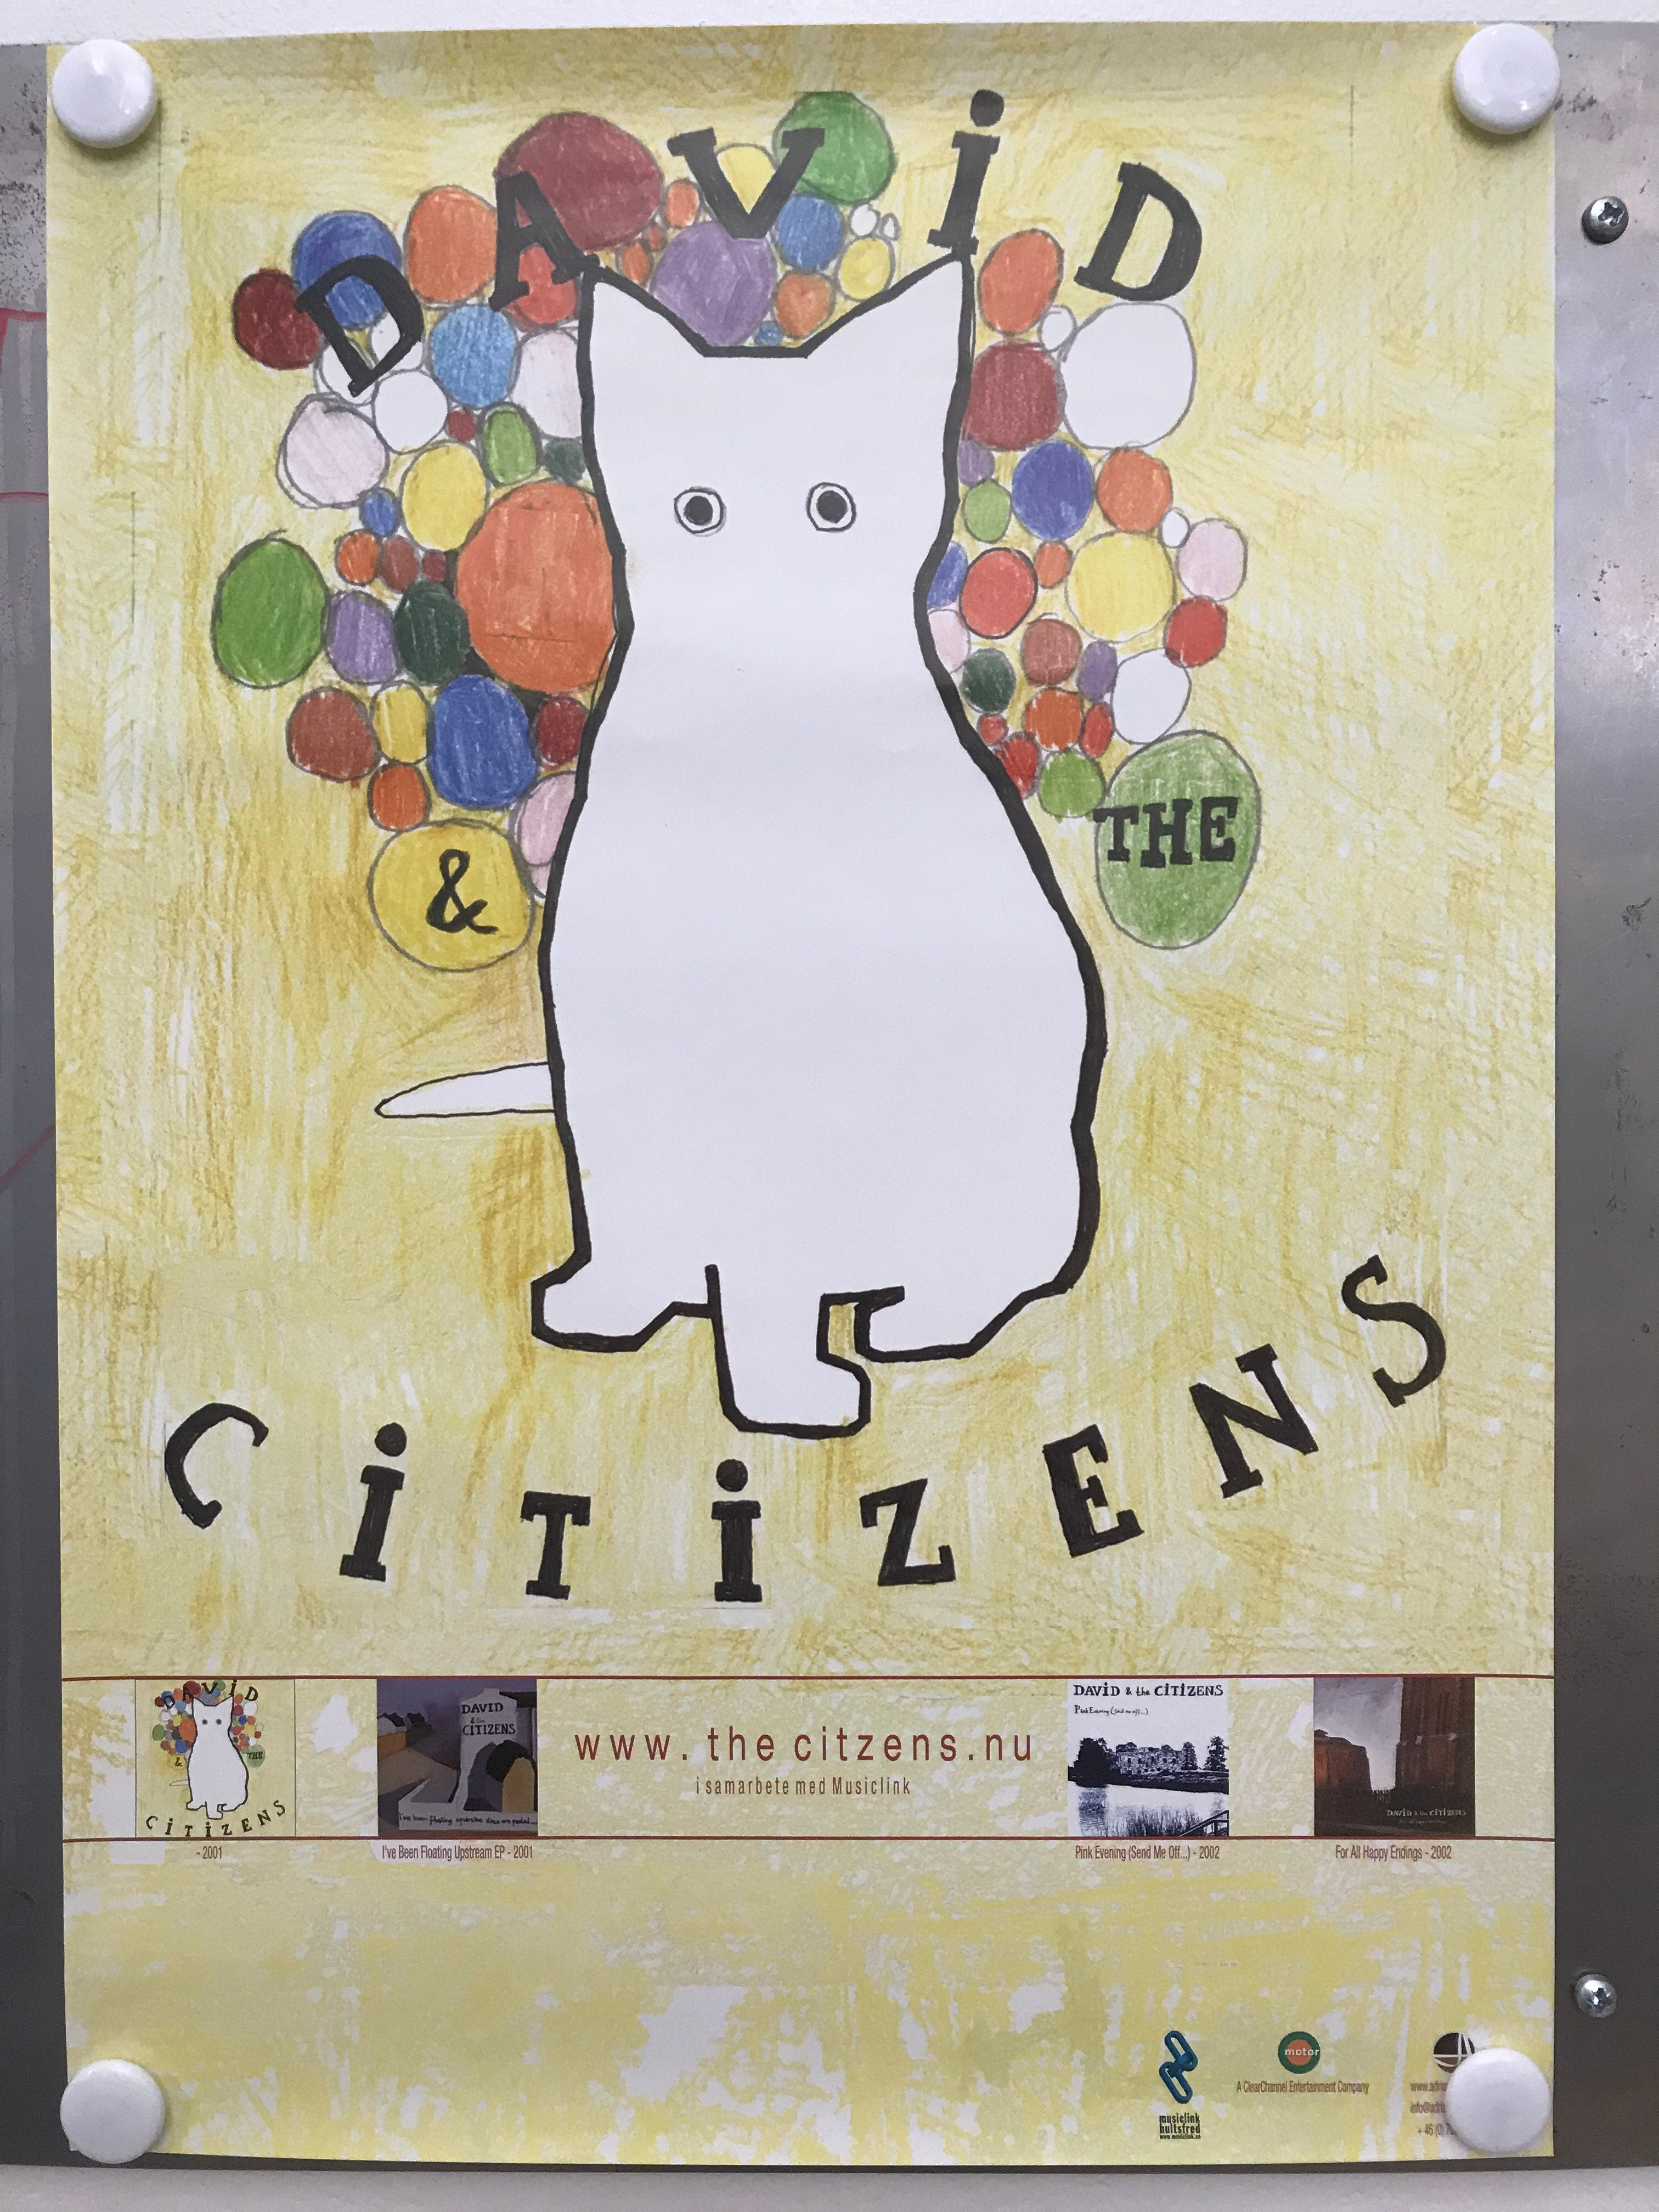 David & the Citizens - Beppe (Poster)